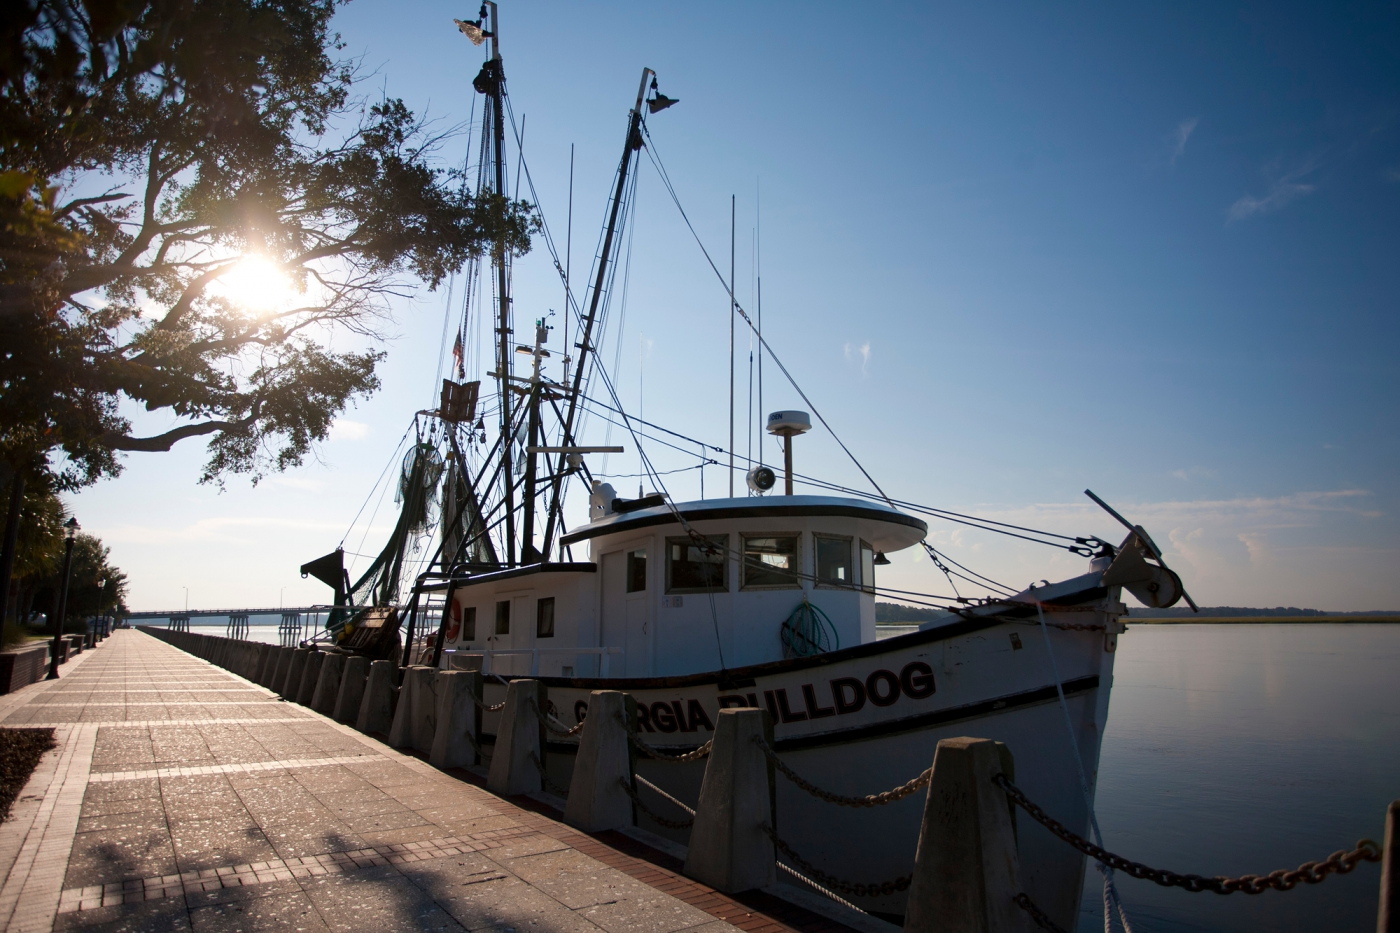 For fresh seafood all year long, South Carolina is just right!